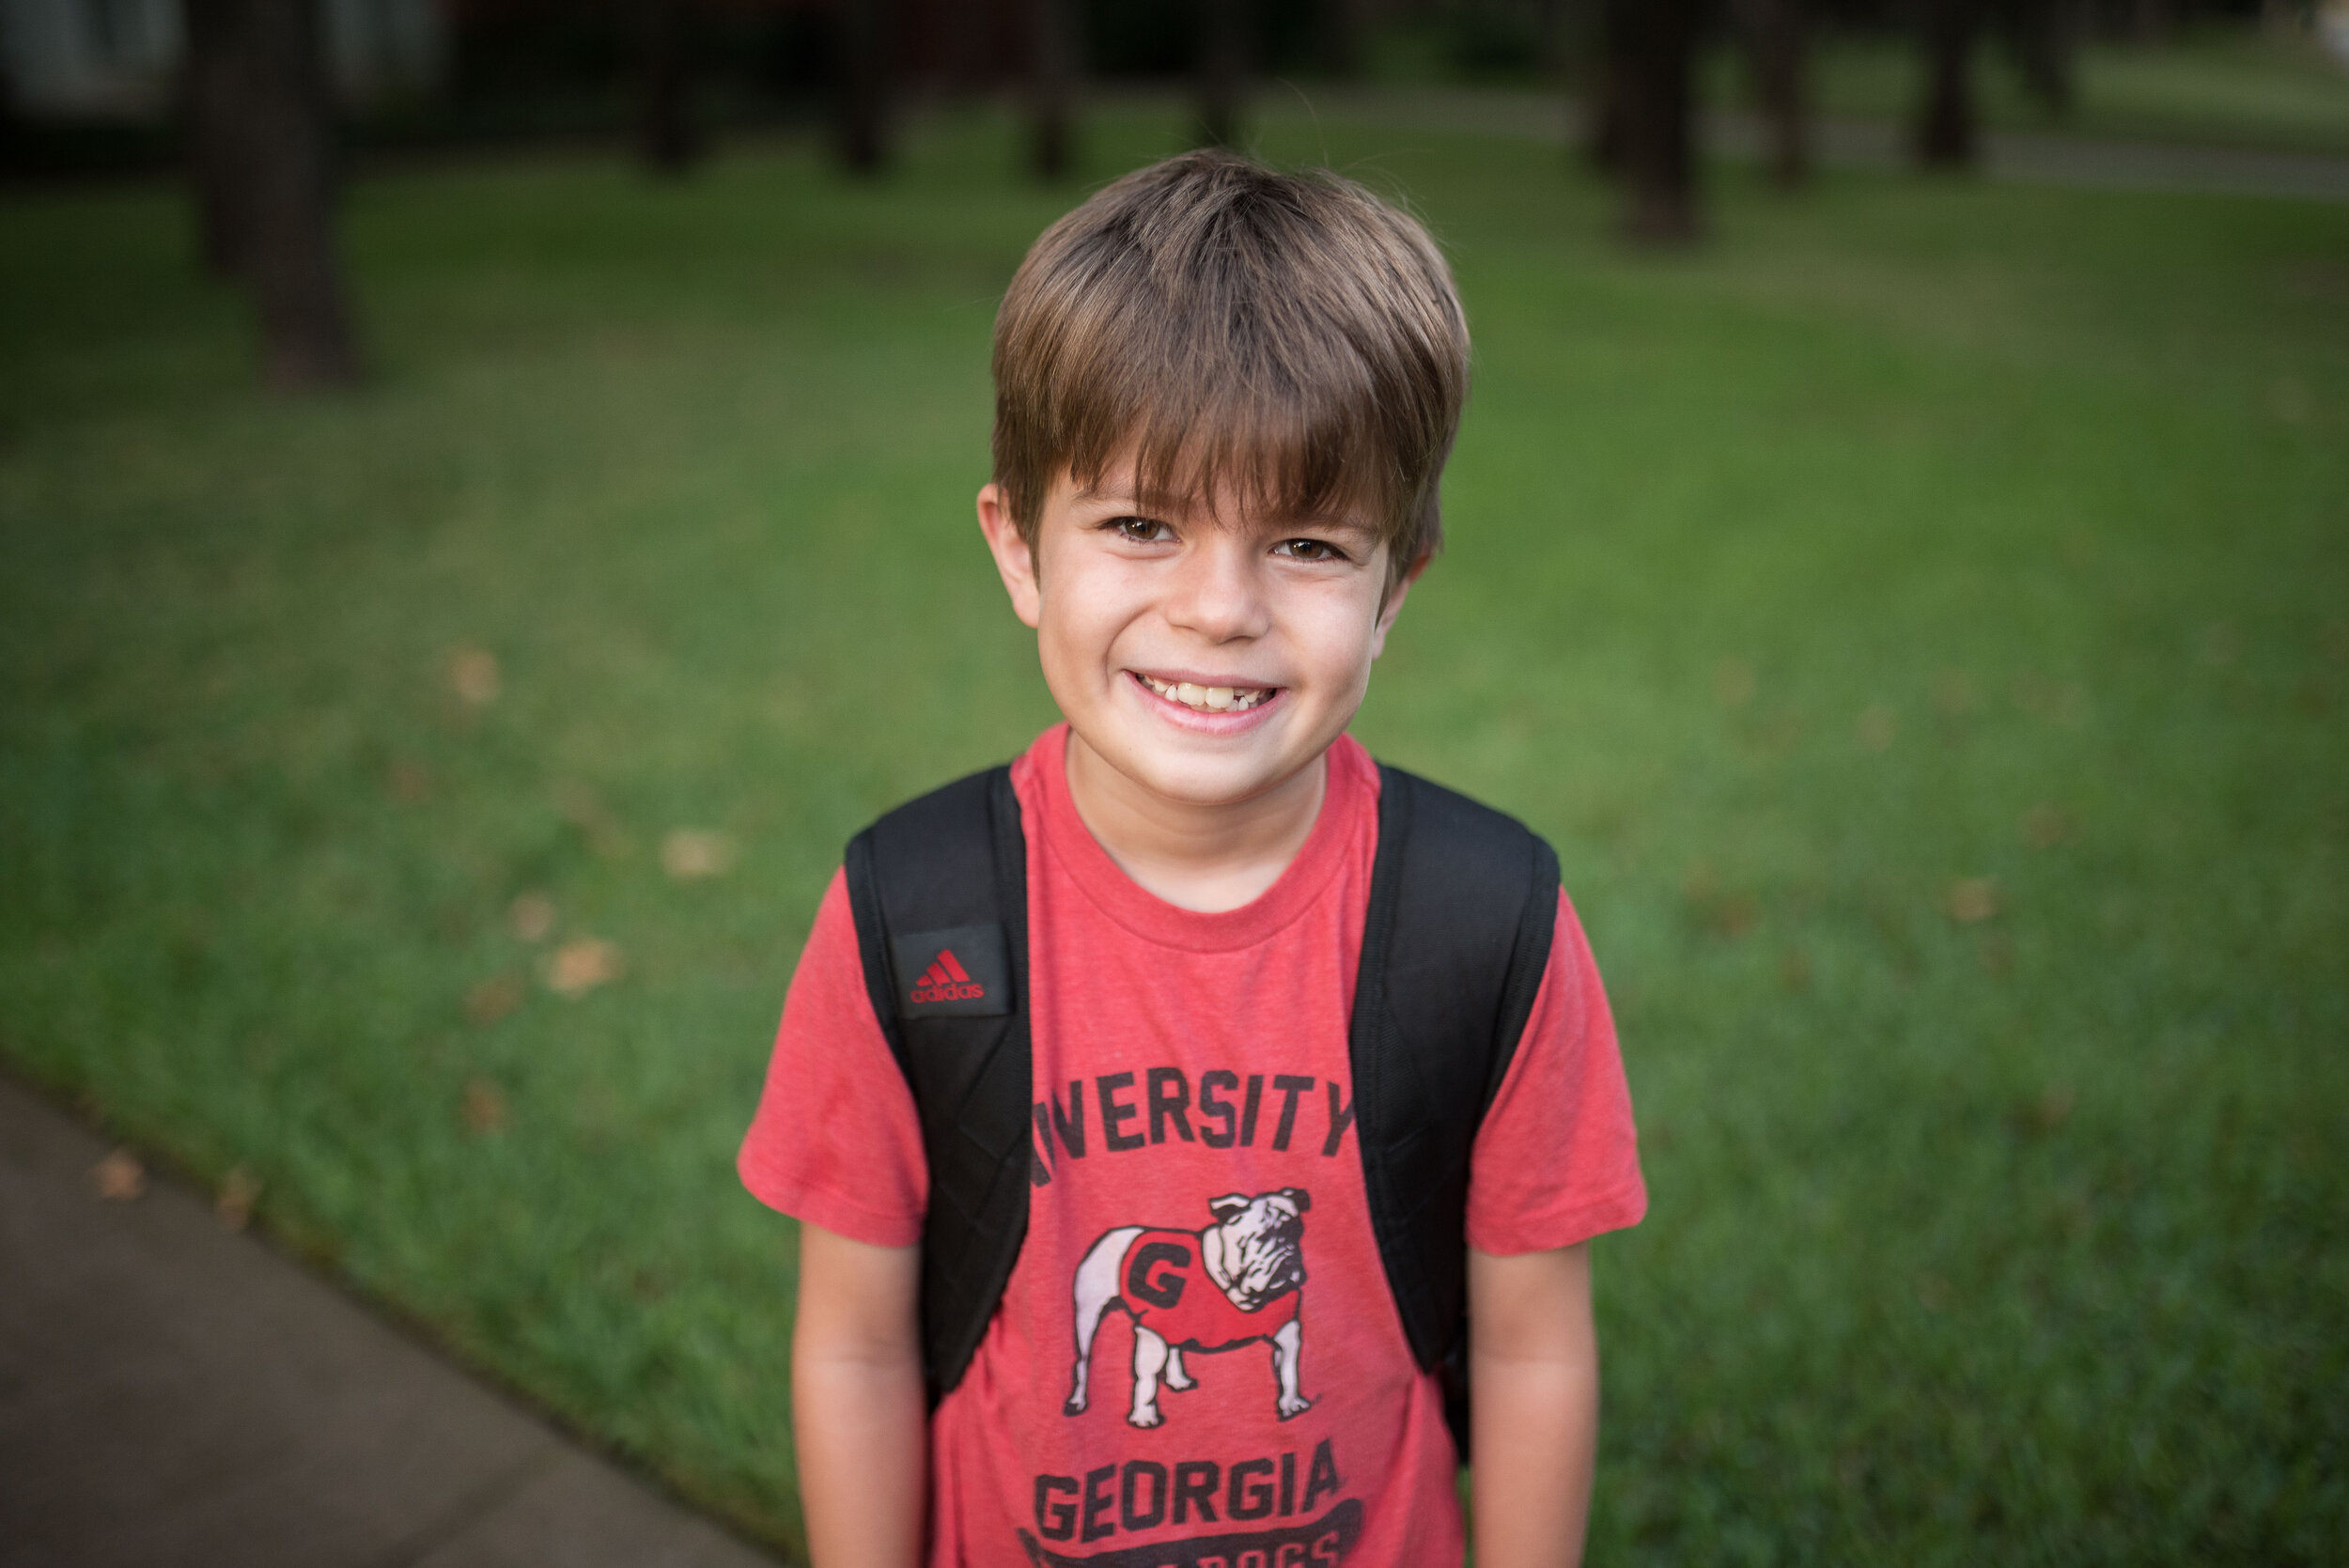 The first day of school came out of nowhere. Second grade for this one.